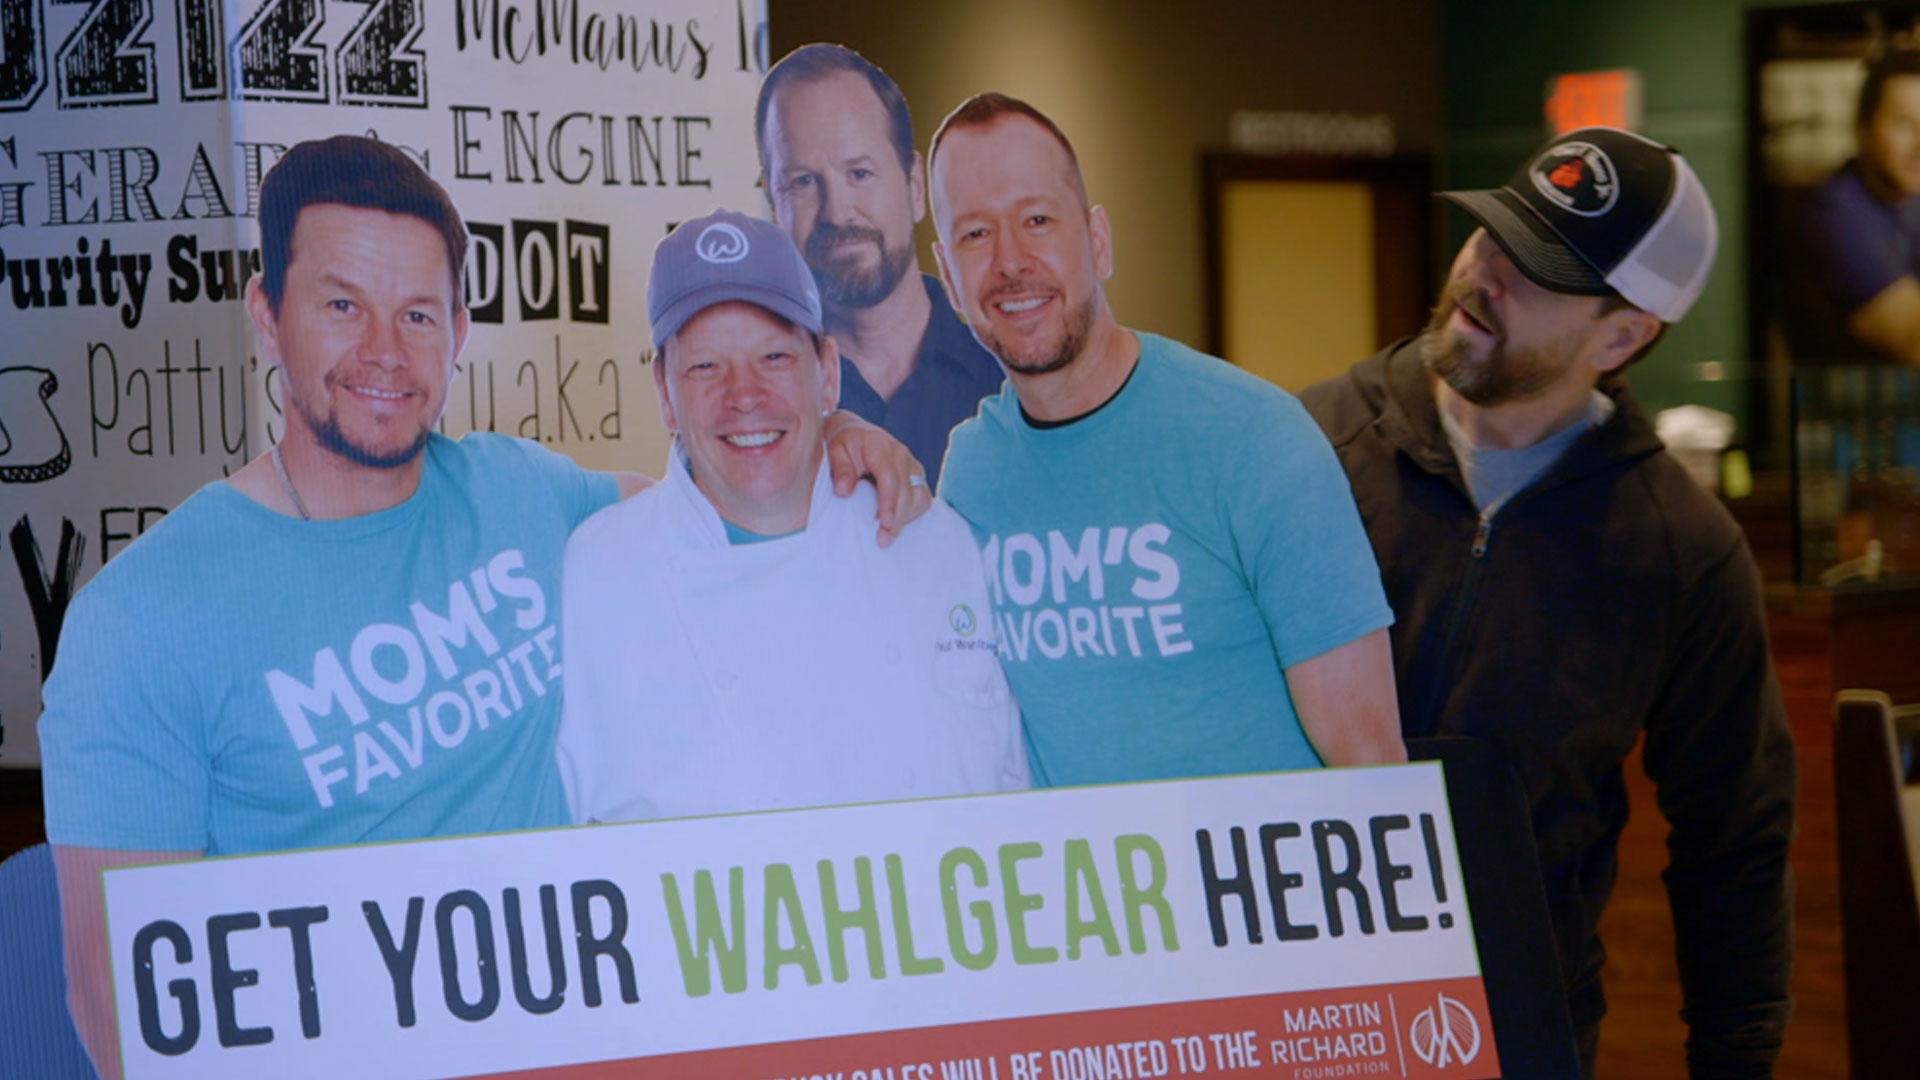 Wahlburgers Comes Home